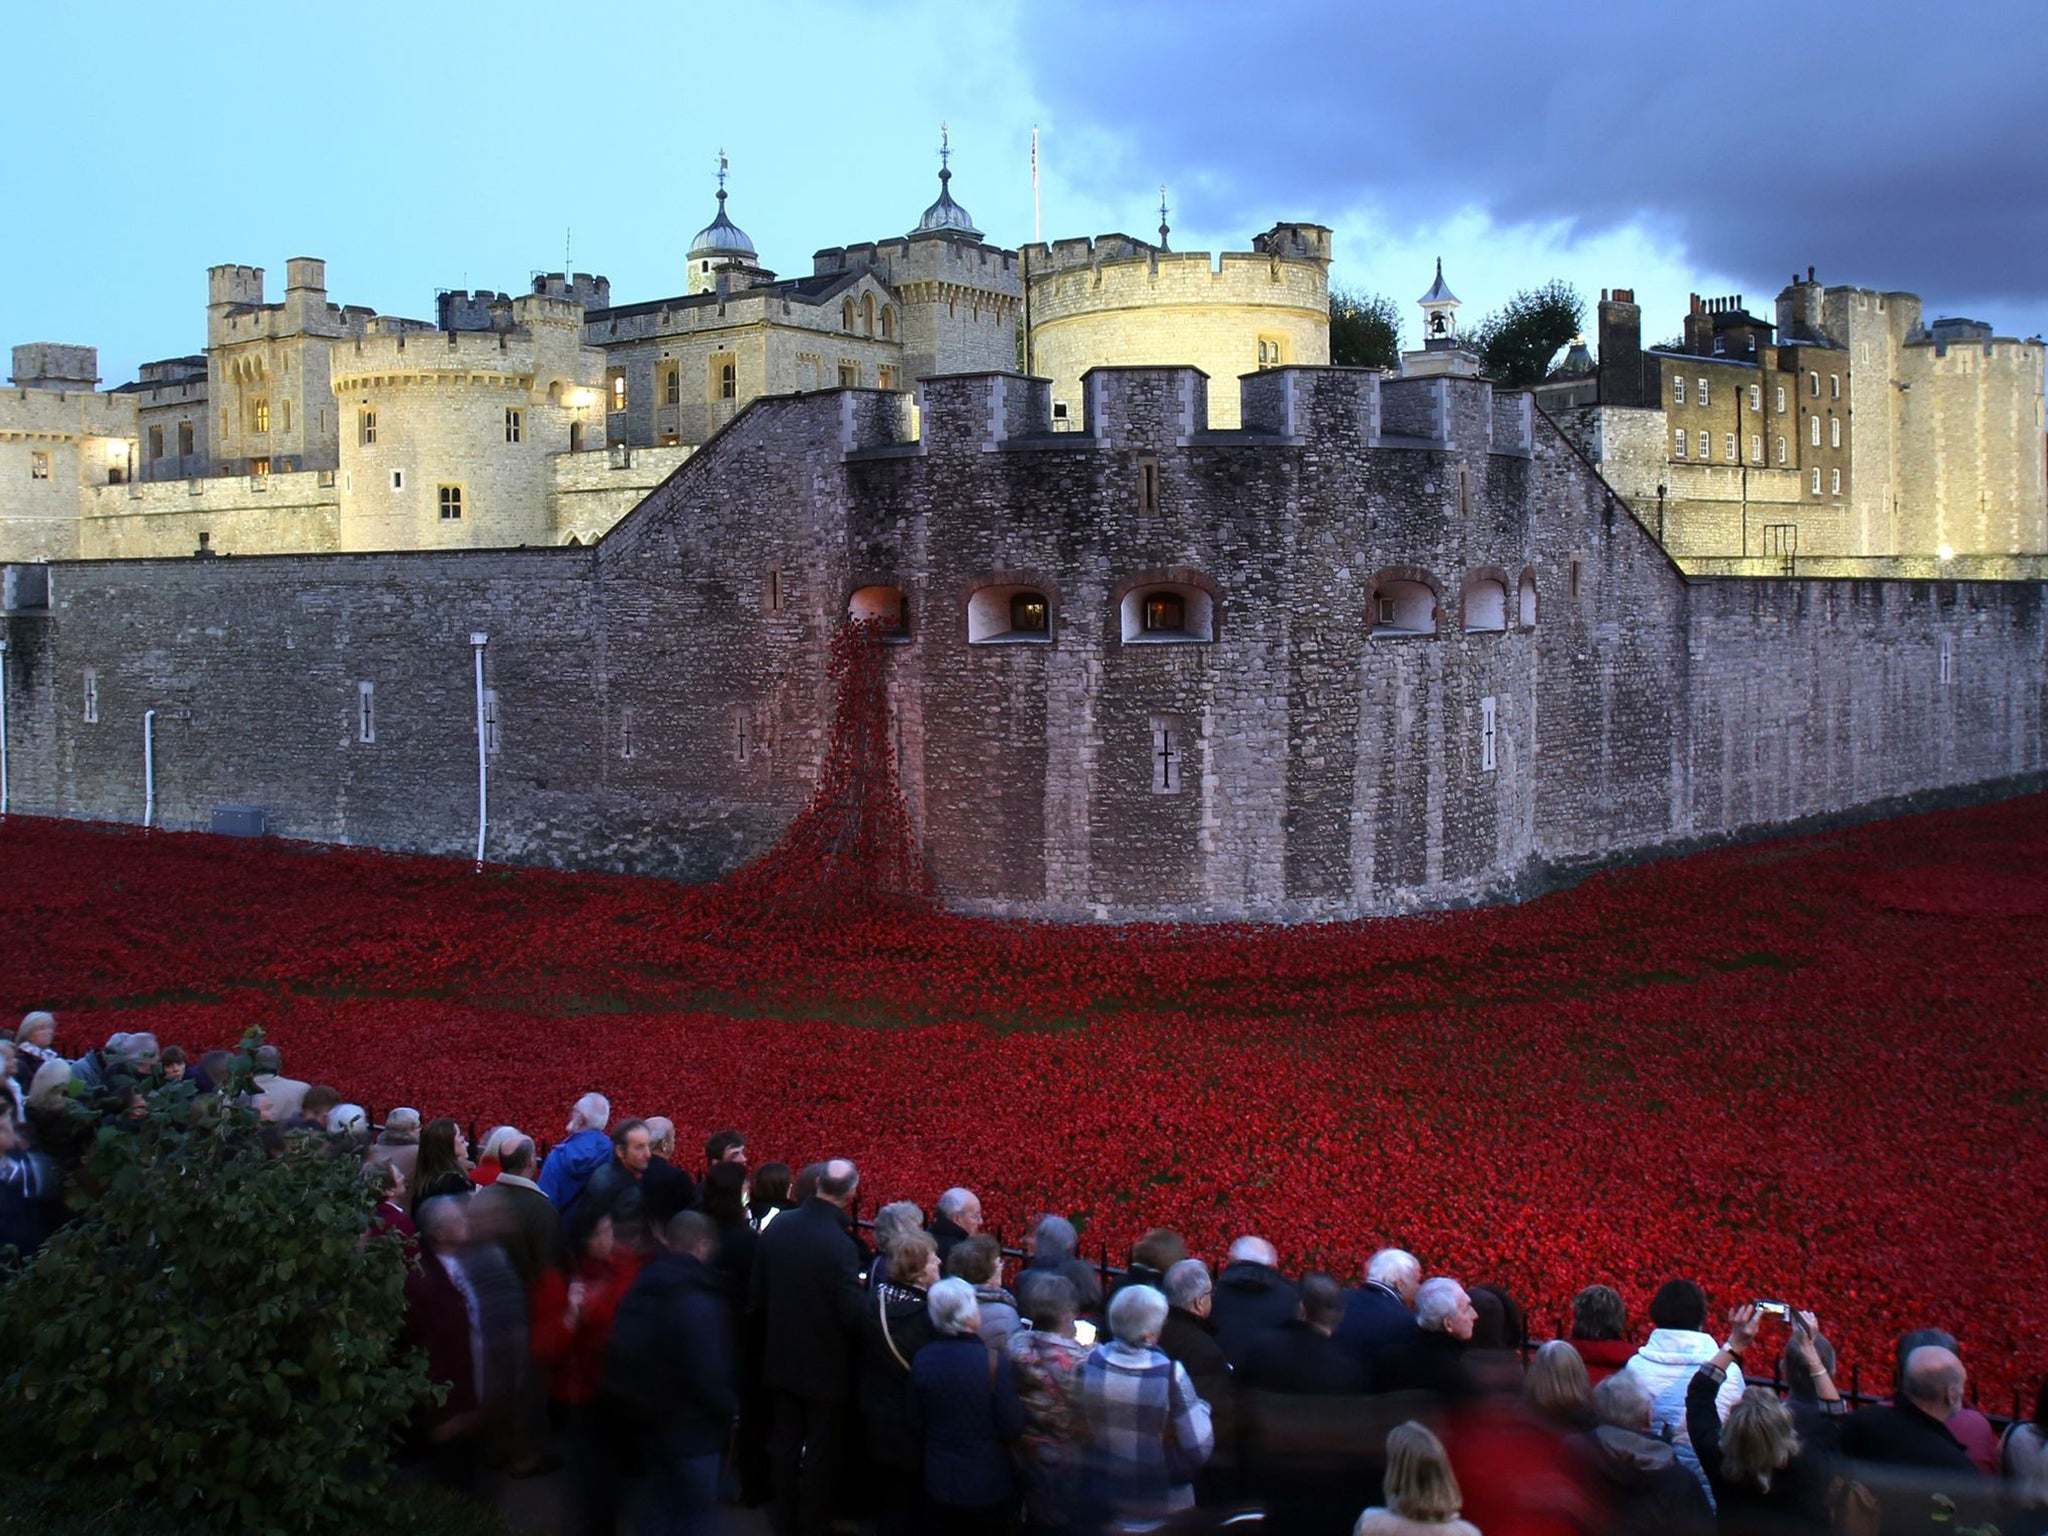 remembrance a sea of poppies a river of people an irresistible